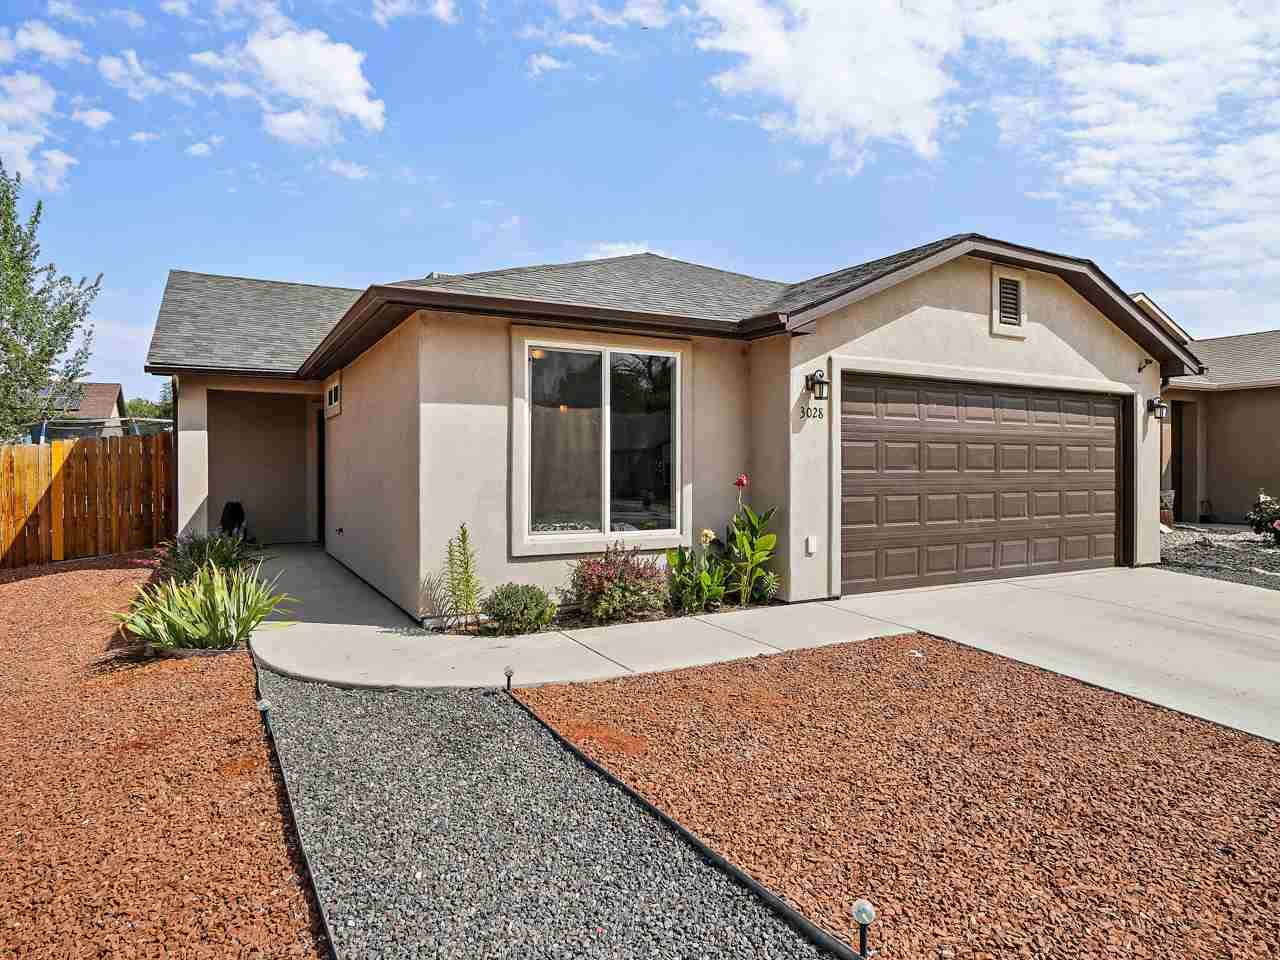 3028 Prickly Pear Drive - Photo 1